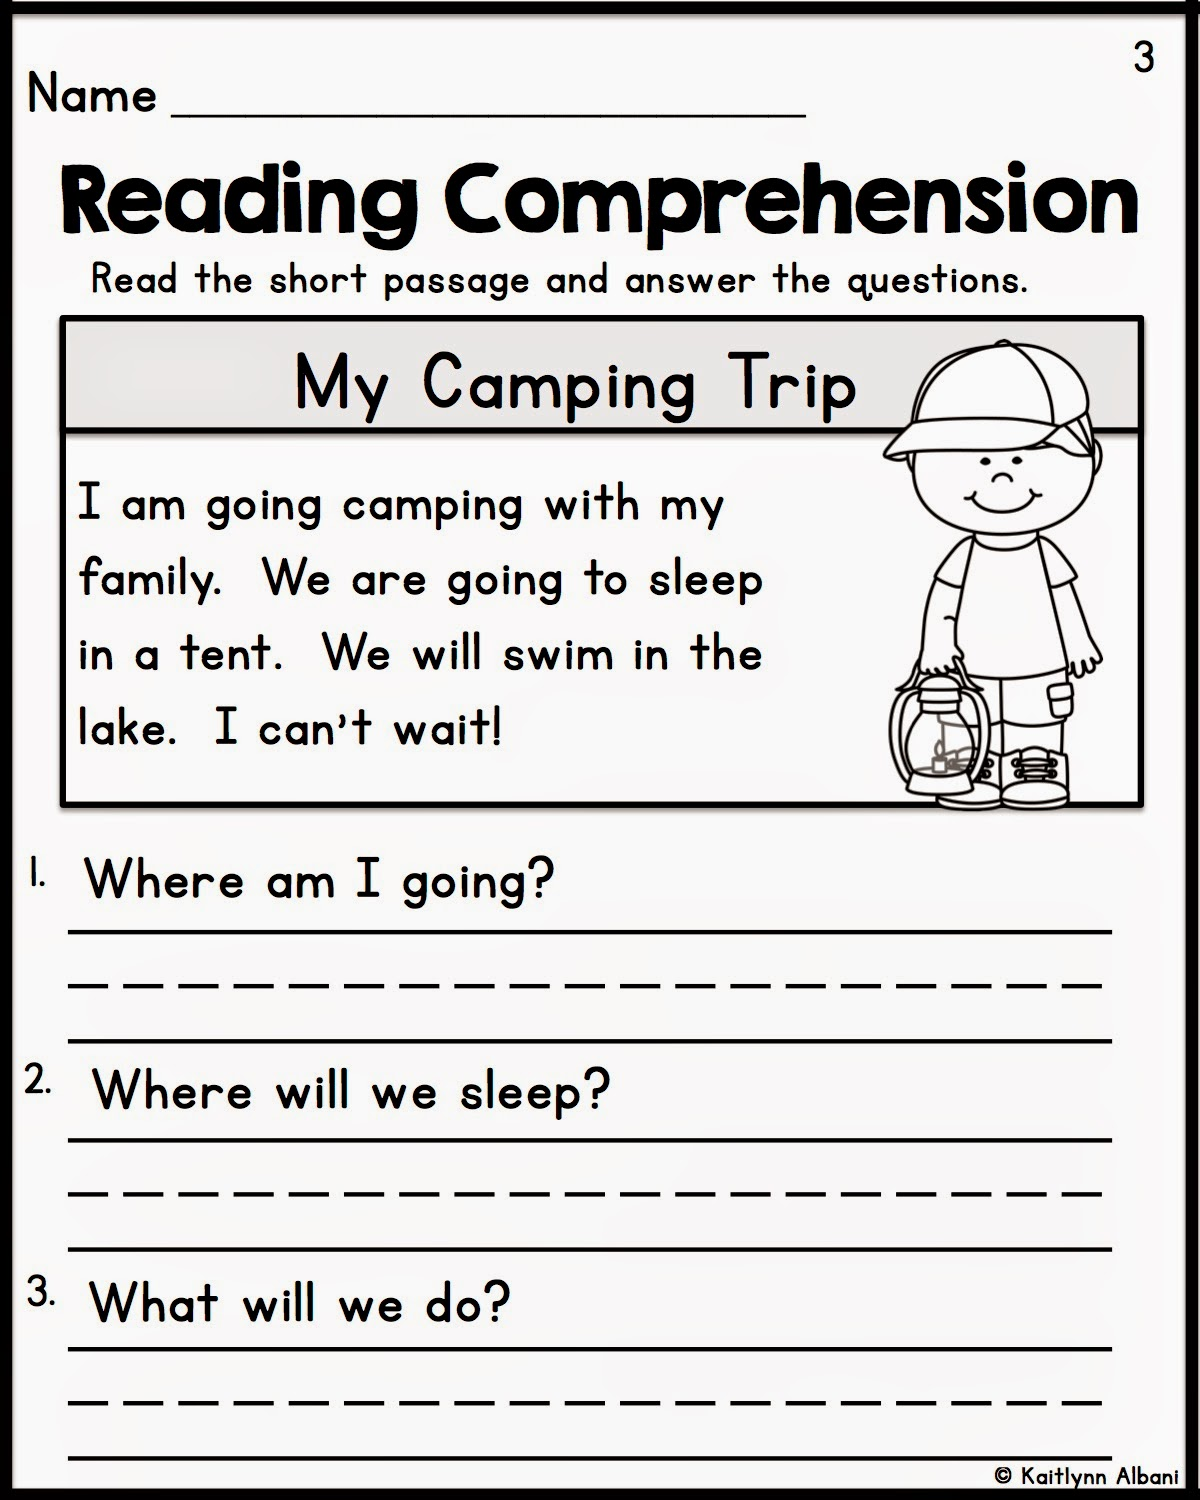 Worksheet Reading Comprehension Test Worksheets Mikyu Free Worksheet – 3rd Grade Reading Comprehension Worksheets Multiple Choice